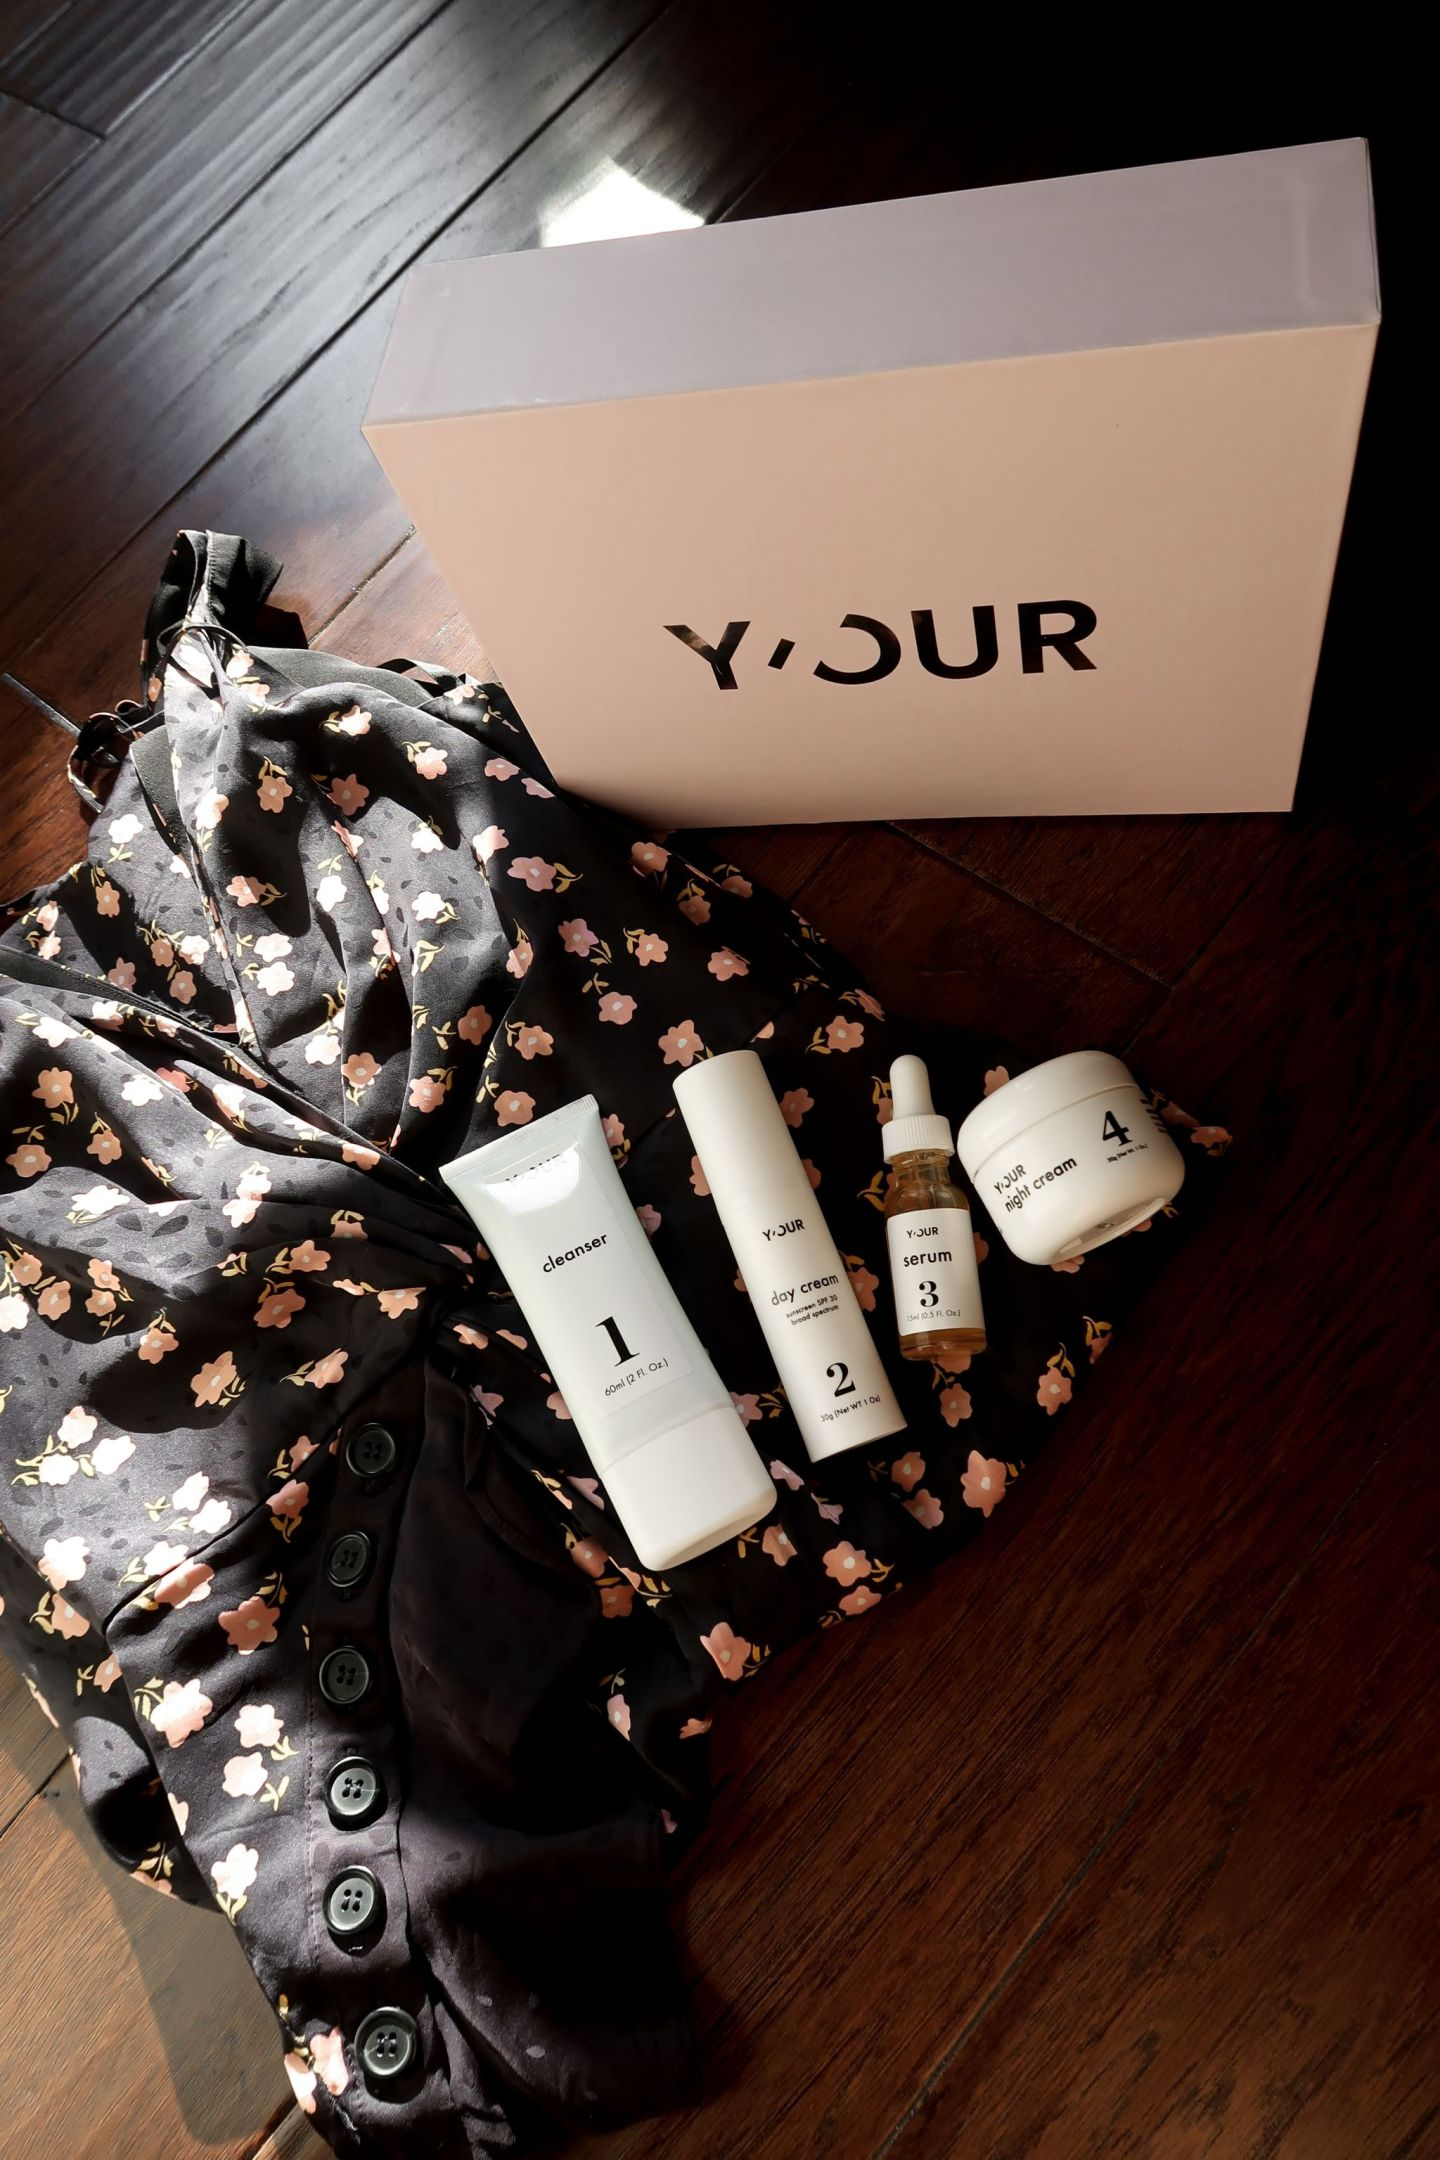 Custom skincare system for Y'OUR unique skin